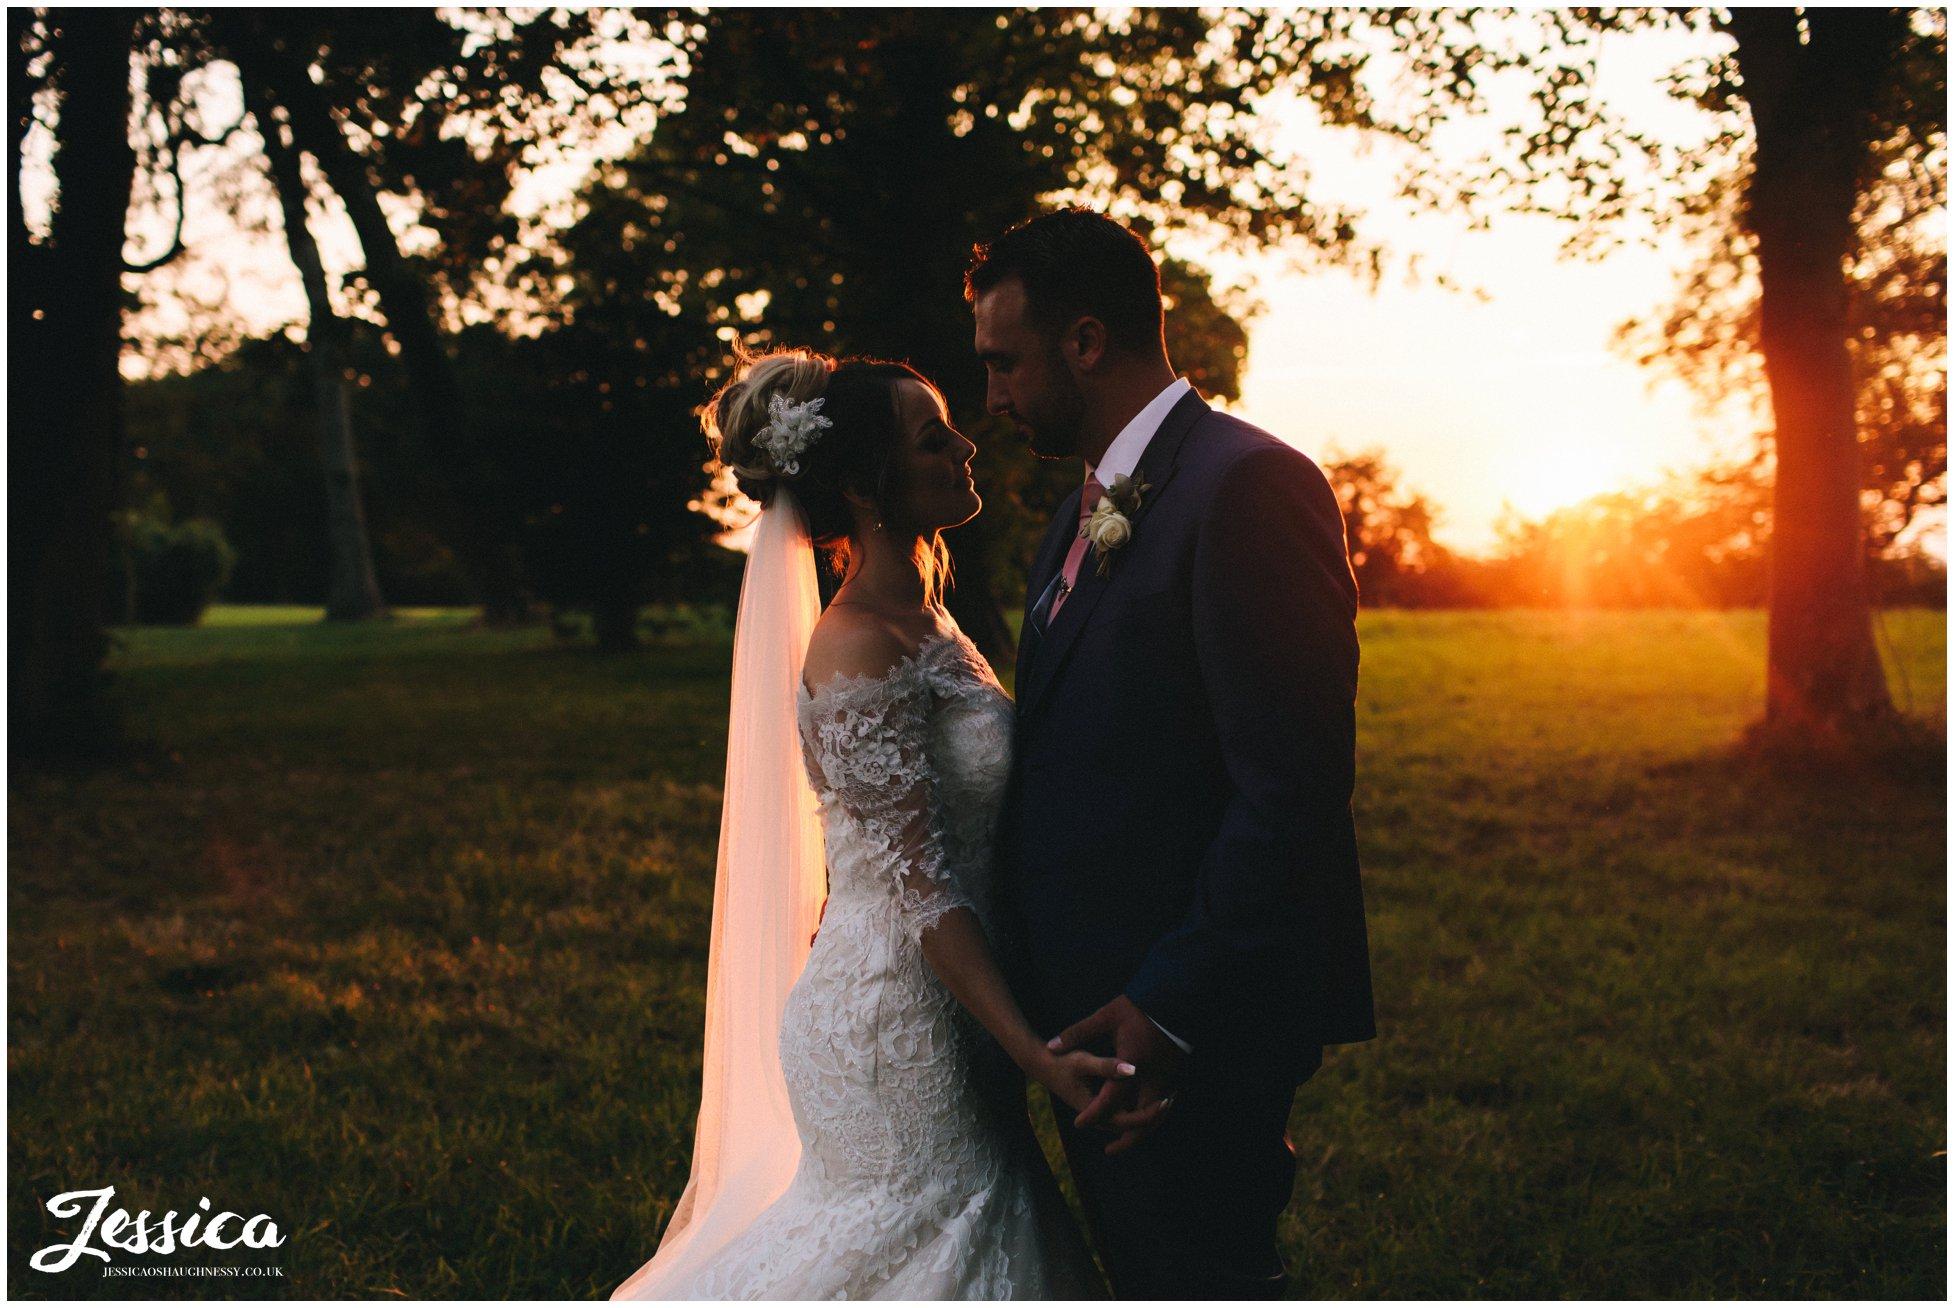 the couple hold hands as the sun goes down